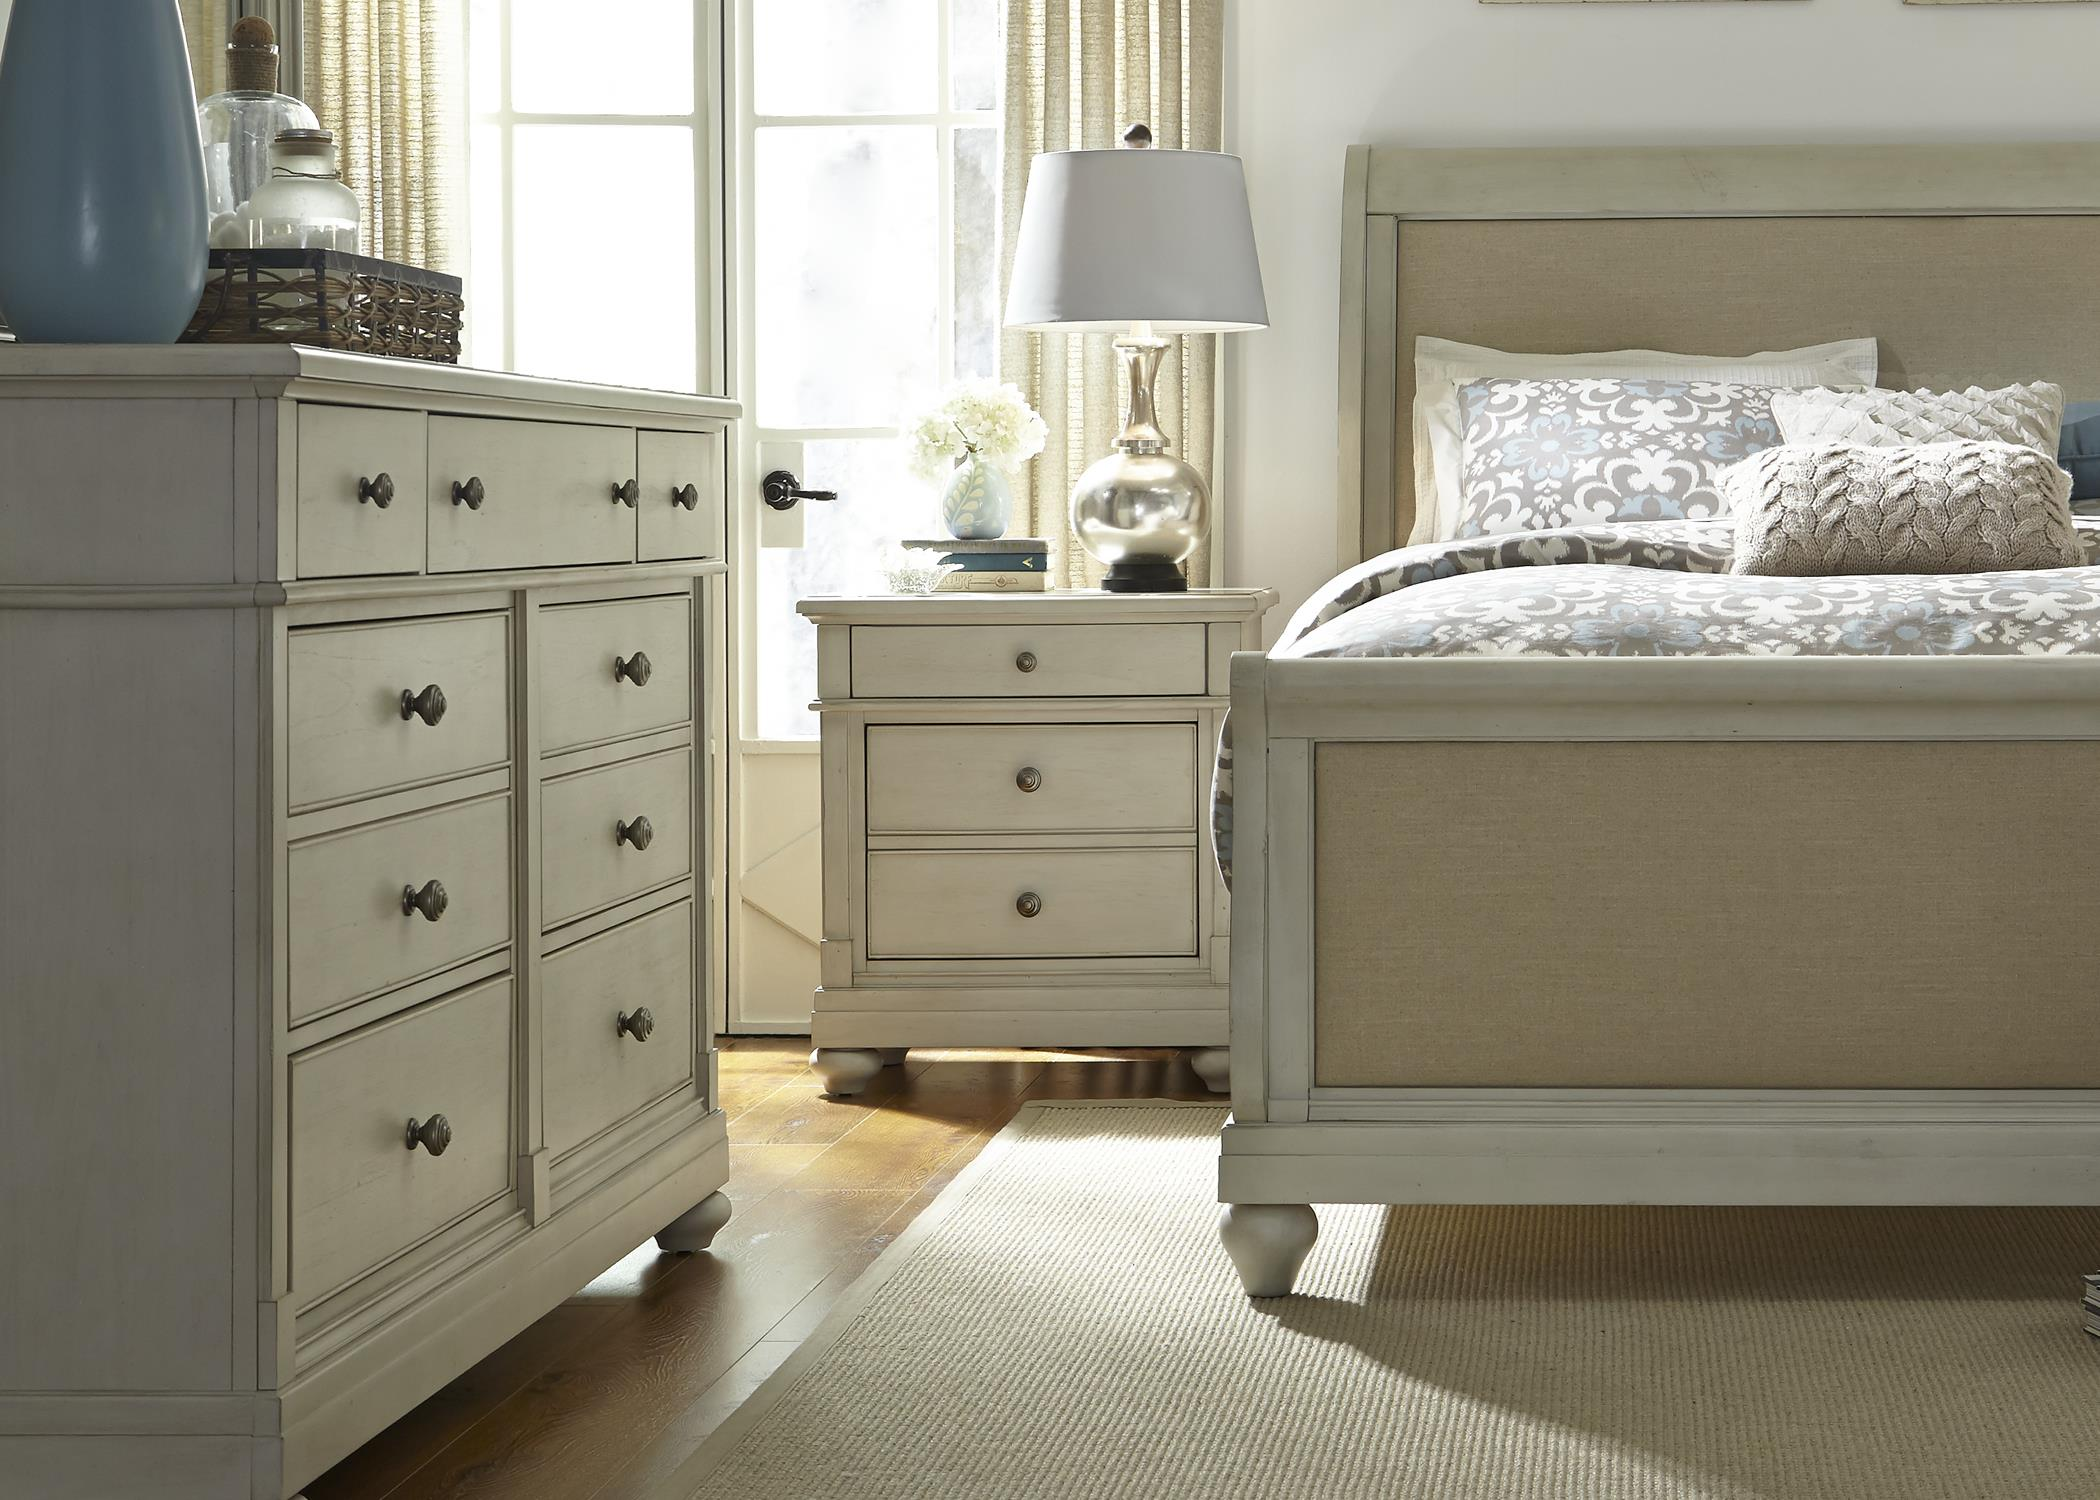 Liberty Furniture Harbor View King Bedroom Group - Item Number: 731-BR-KSLDMN